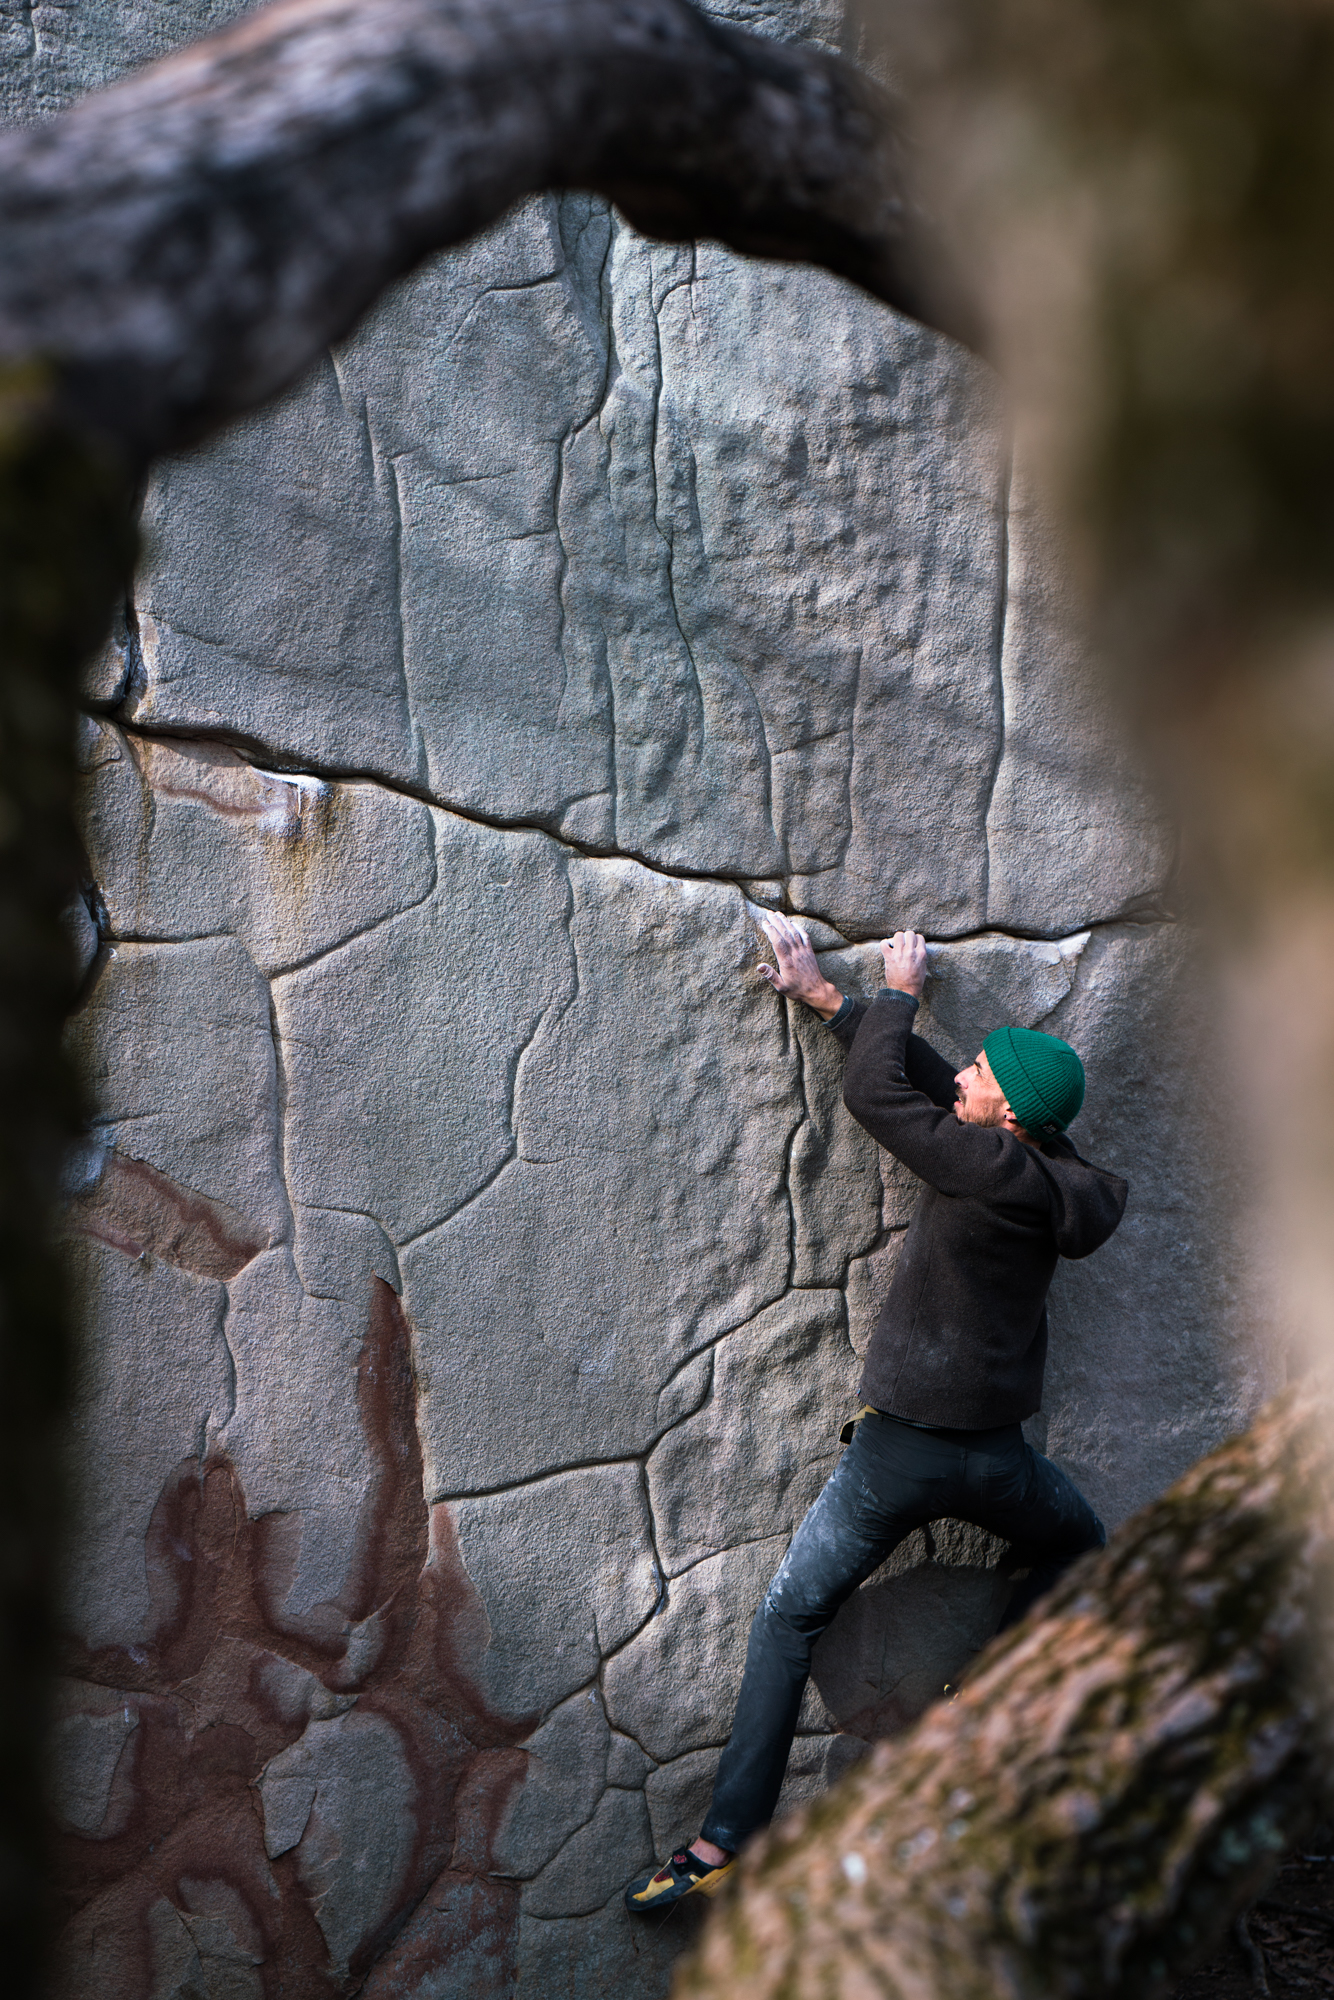 Matt Ginley with the green hat beta on a v10 traverse across the Deception Boulder